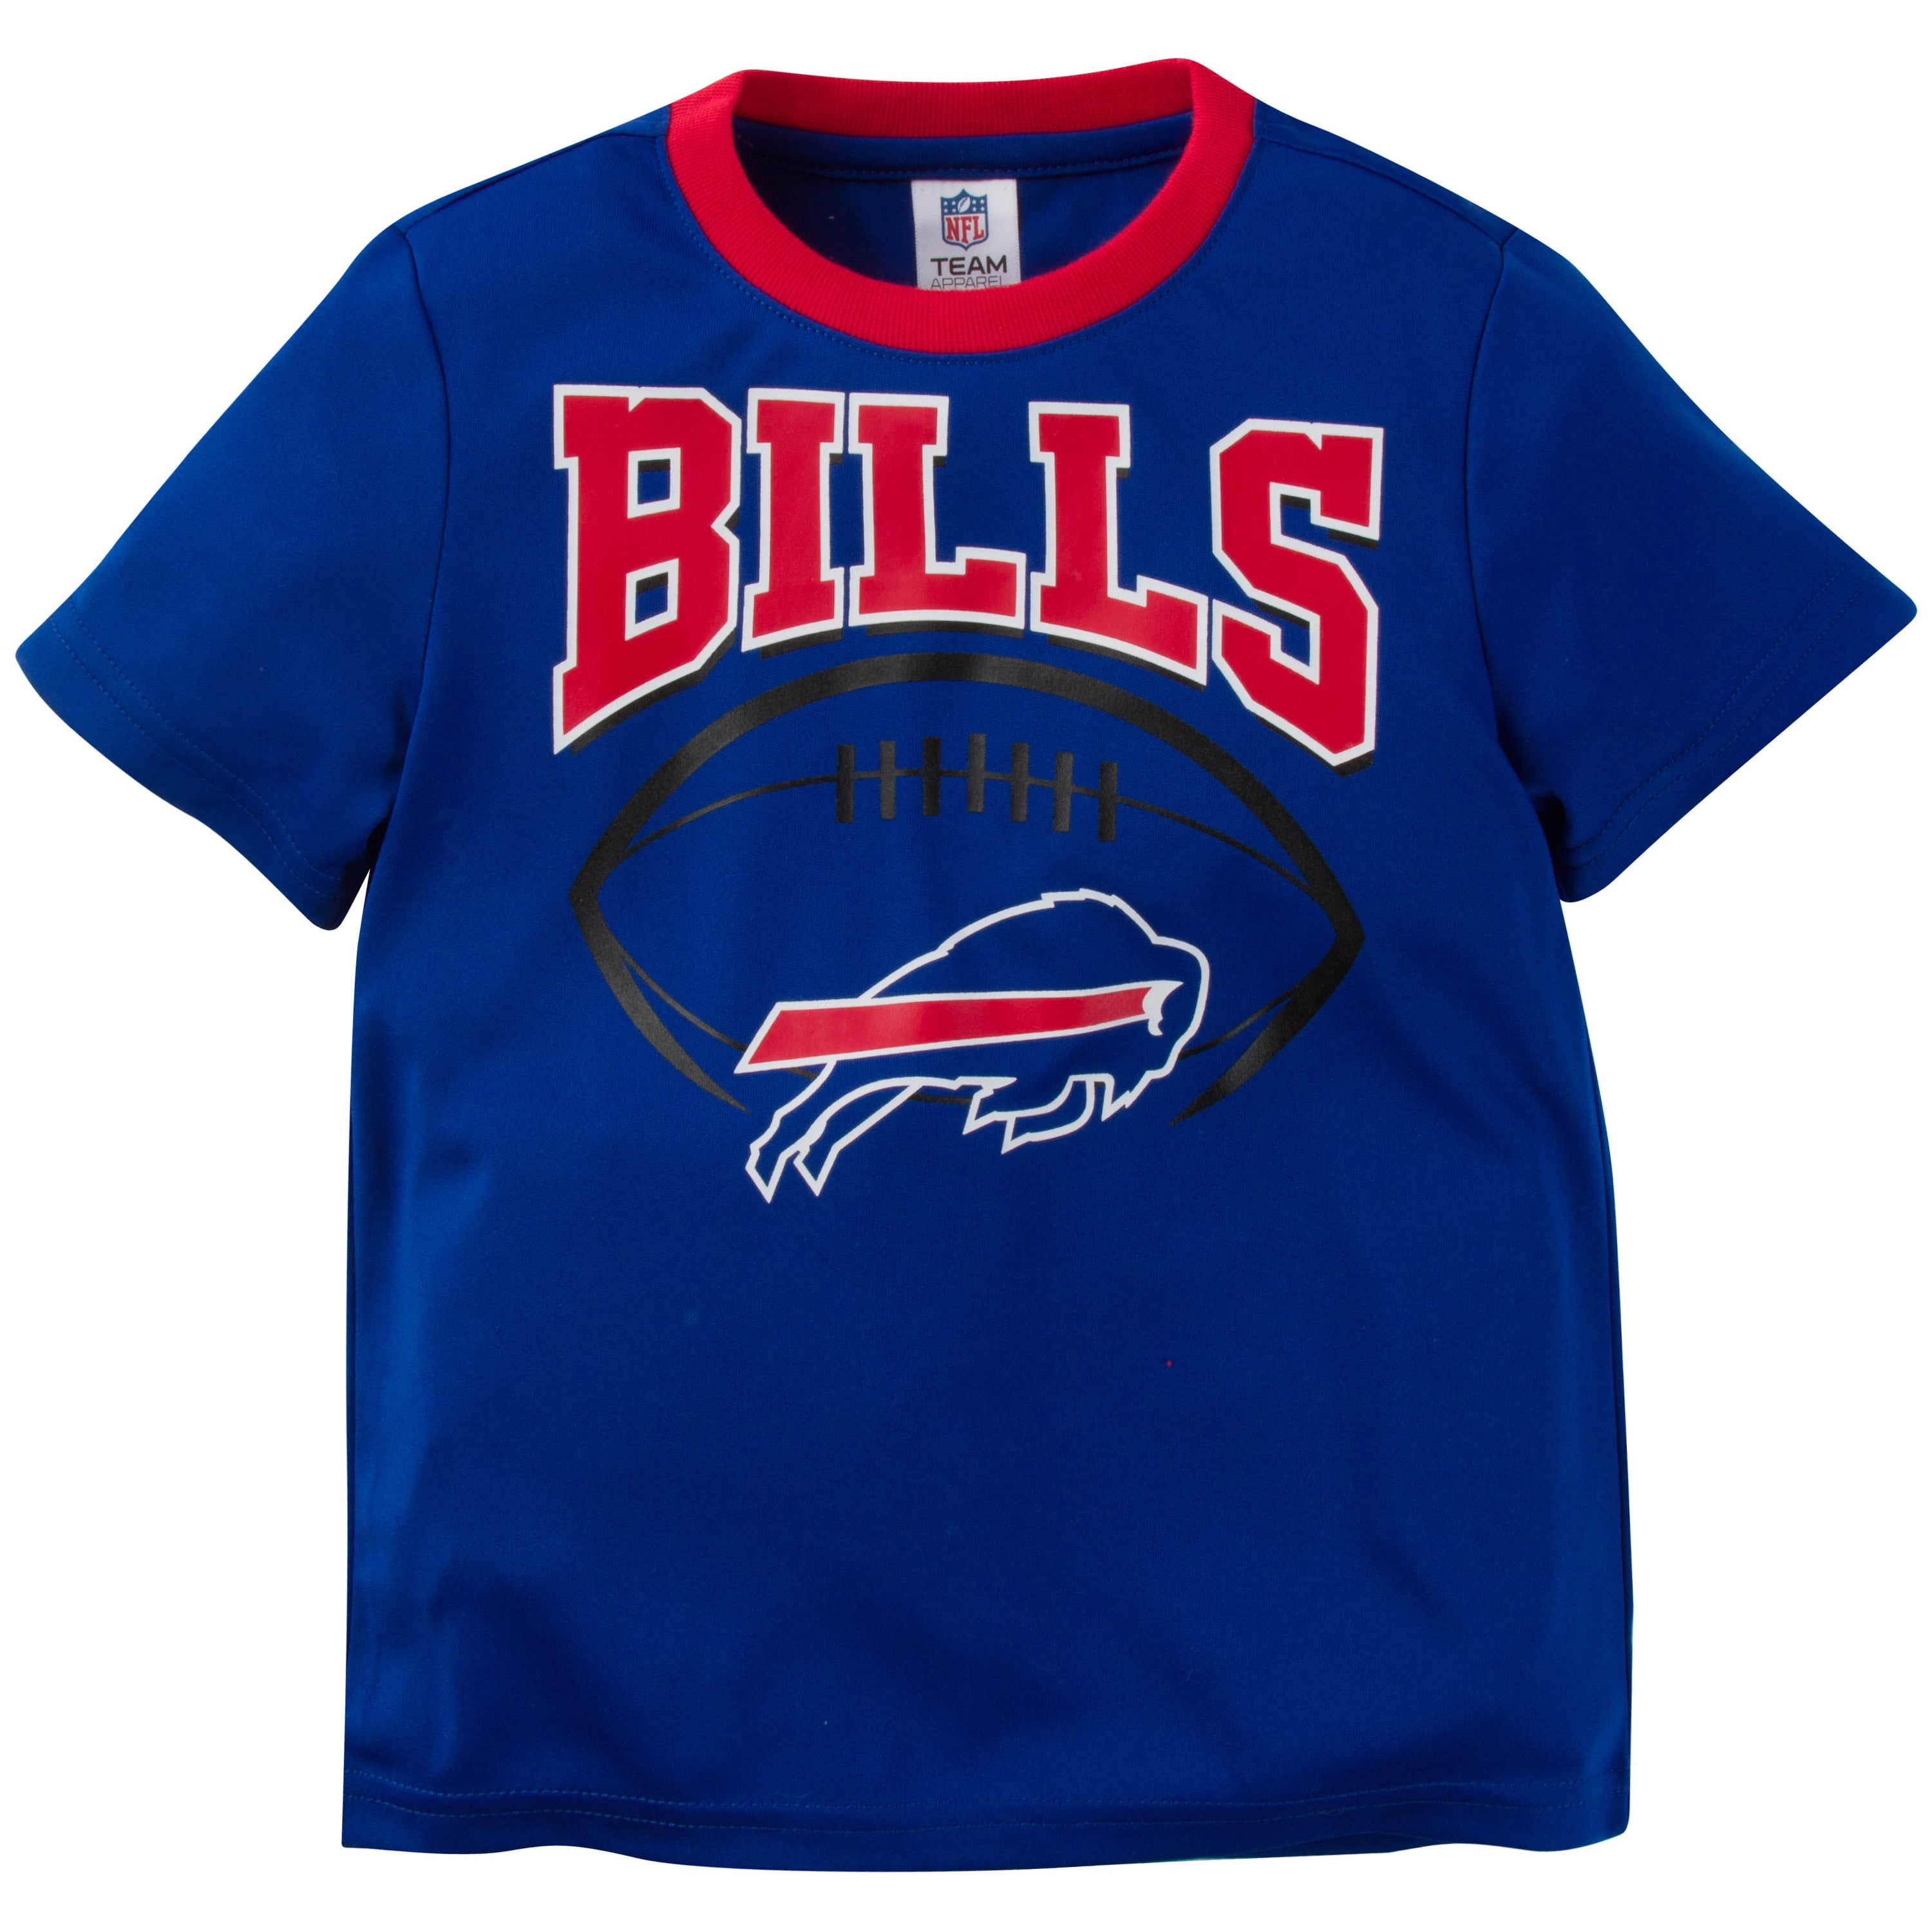 quality design 6c0e2 d4ca8 Details about Buffalo Bills Baby and Toddler Gerber NFL Athletic Short  Sleeve Tee